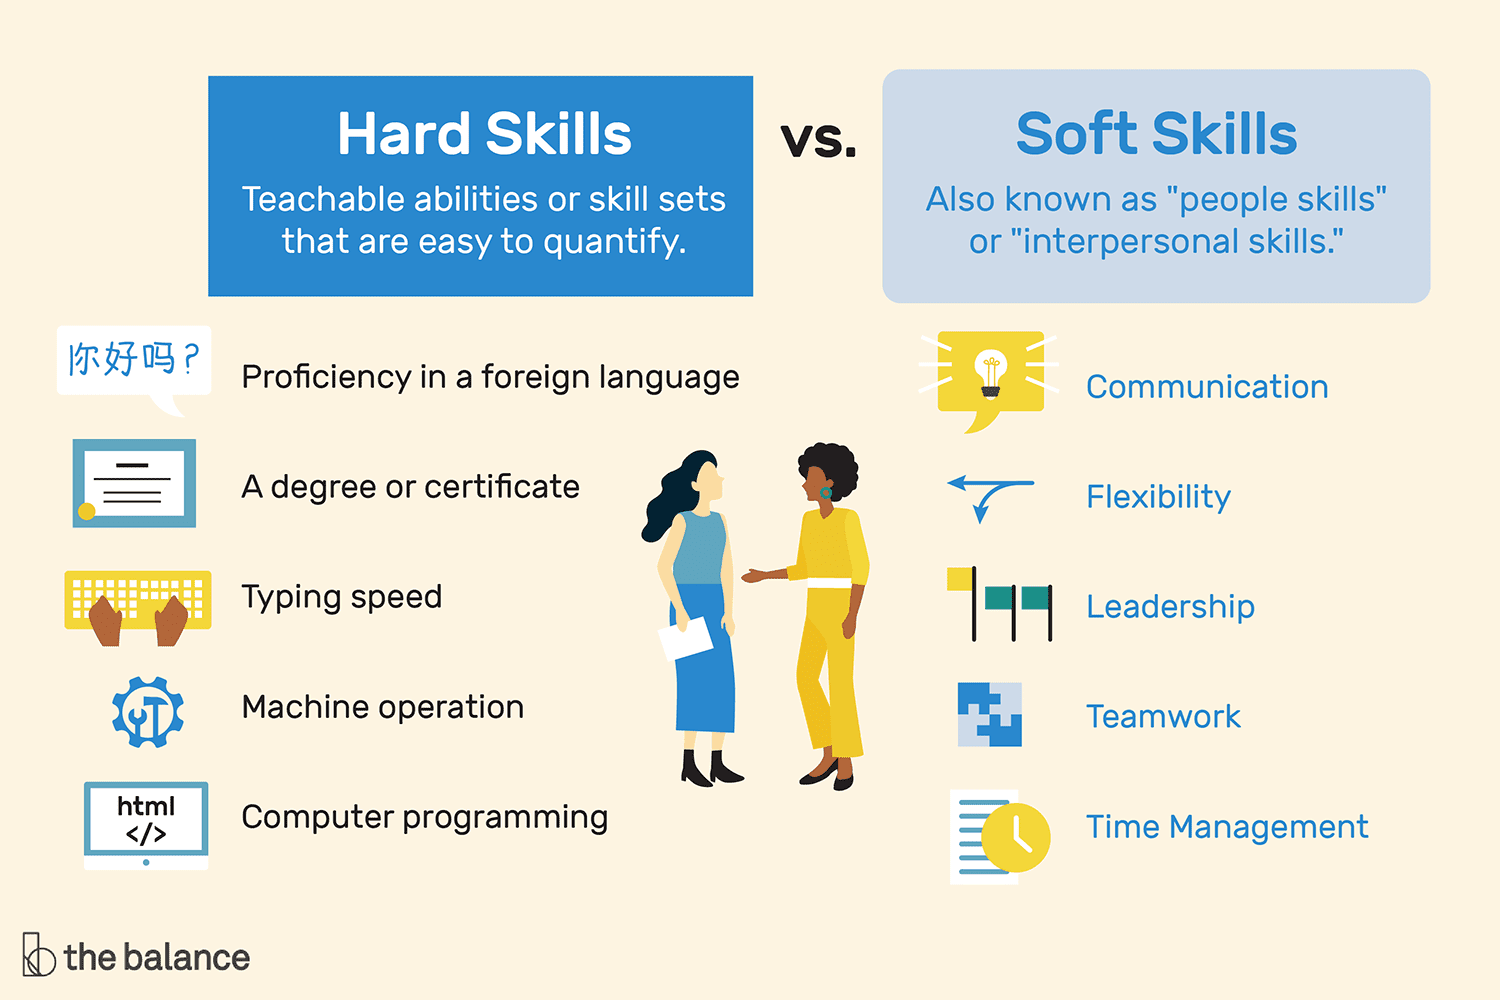 Hard Skills vs. Soft Skills: What's the Difference?